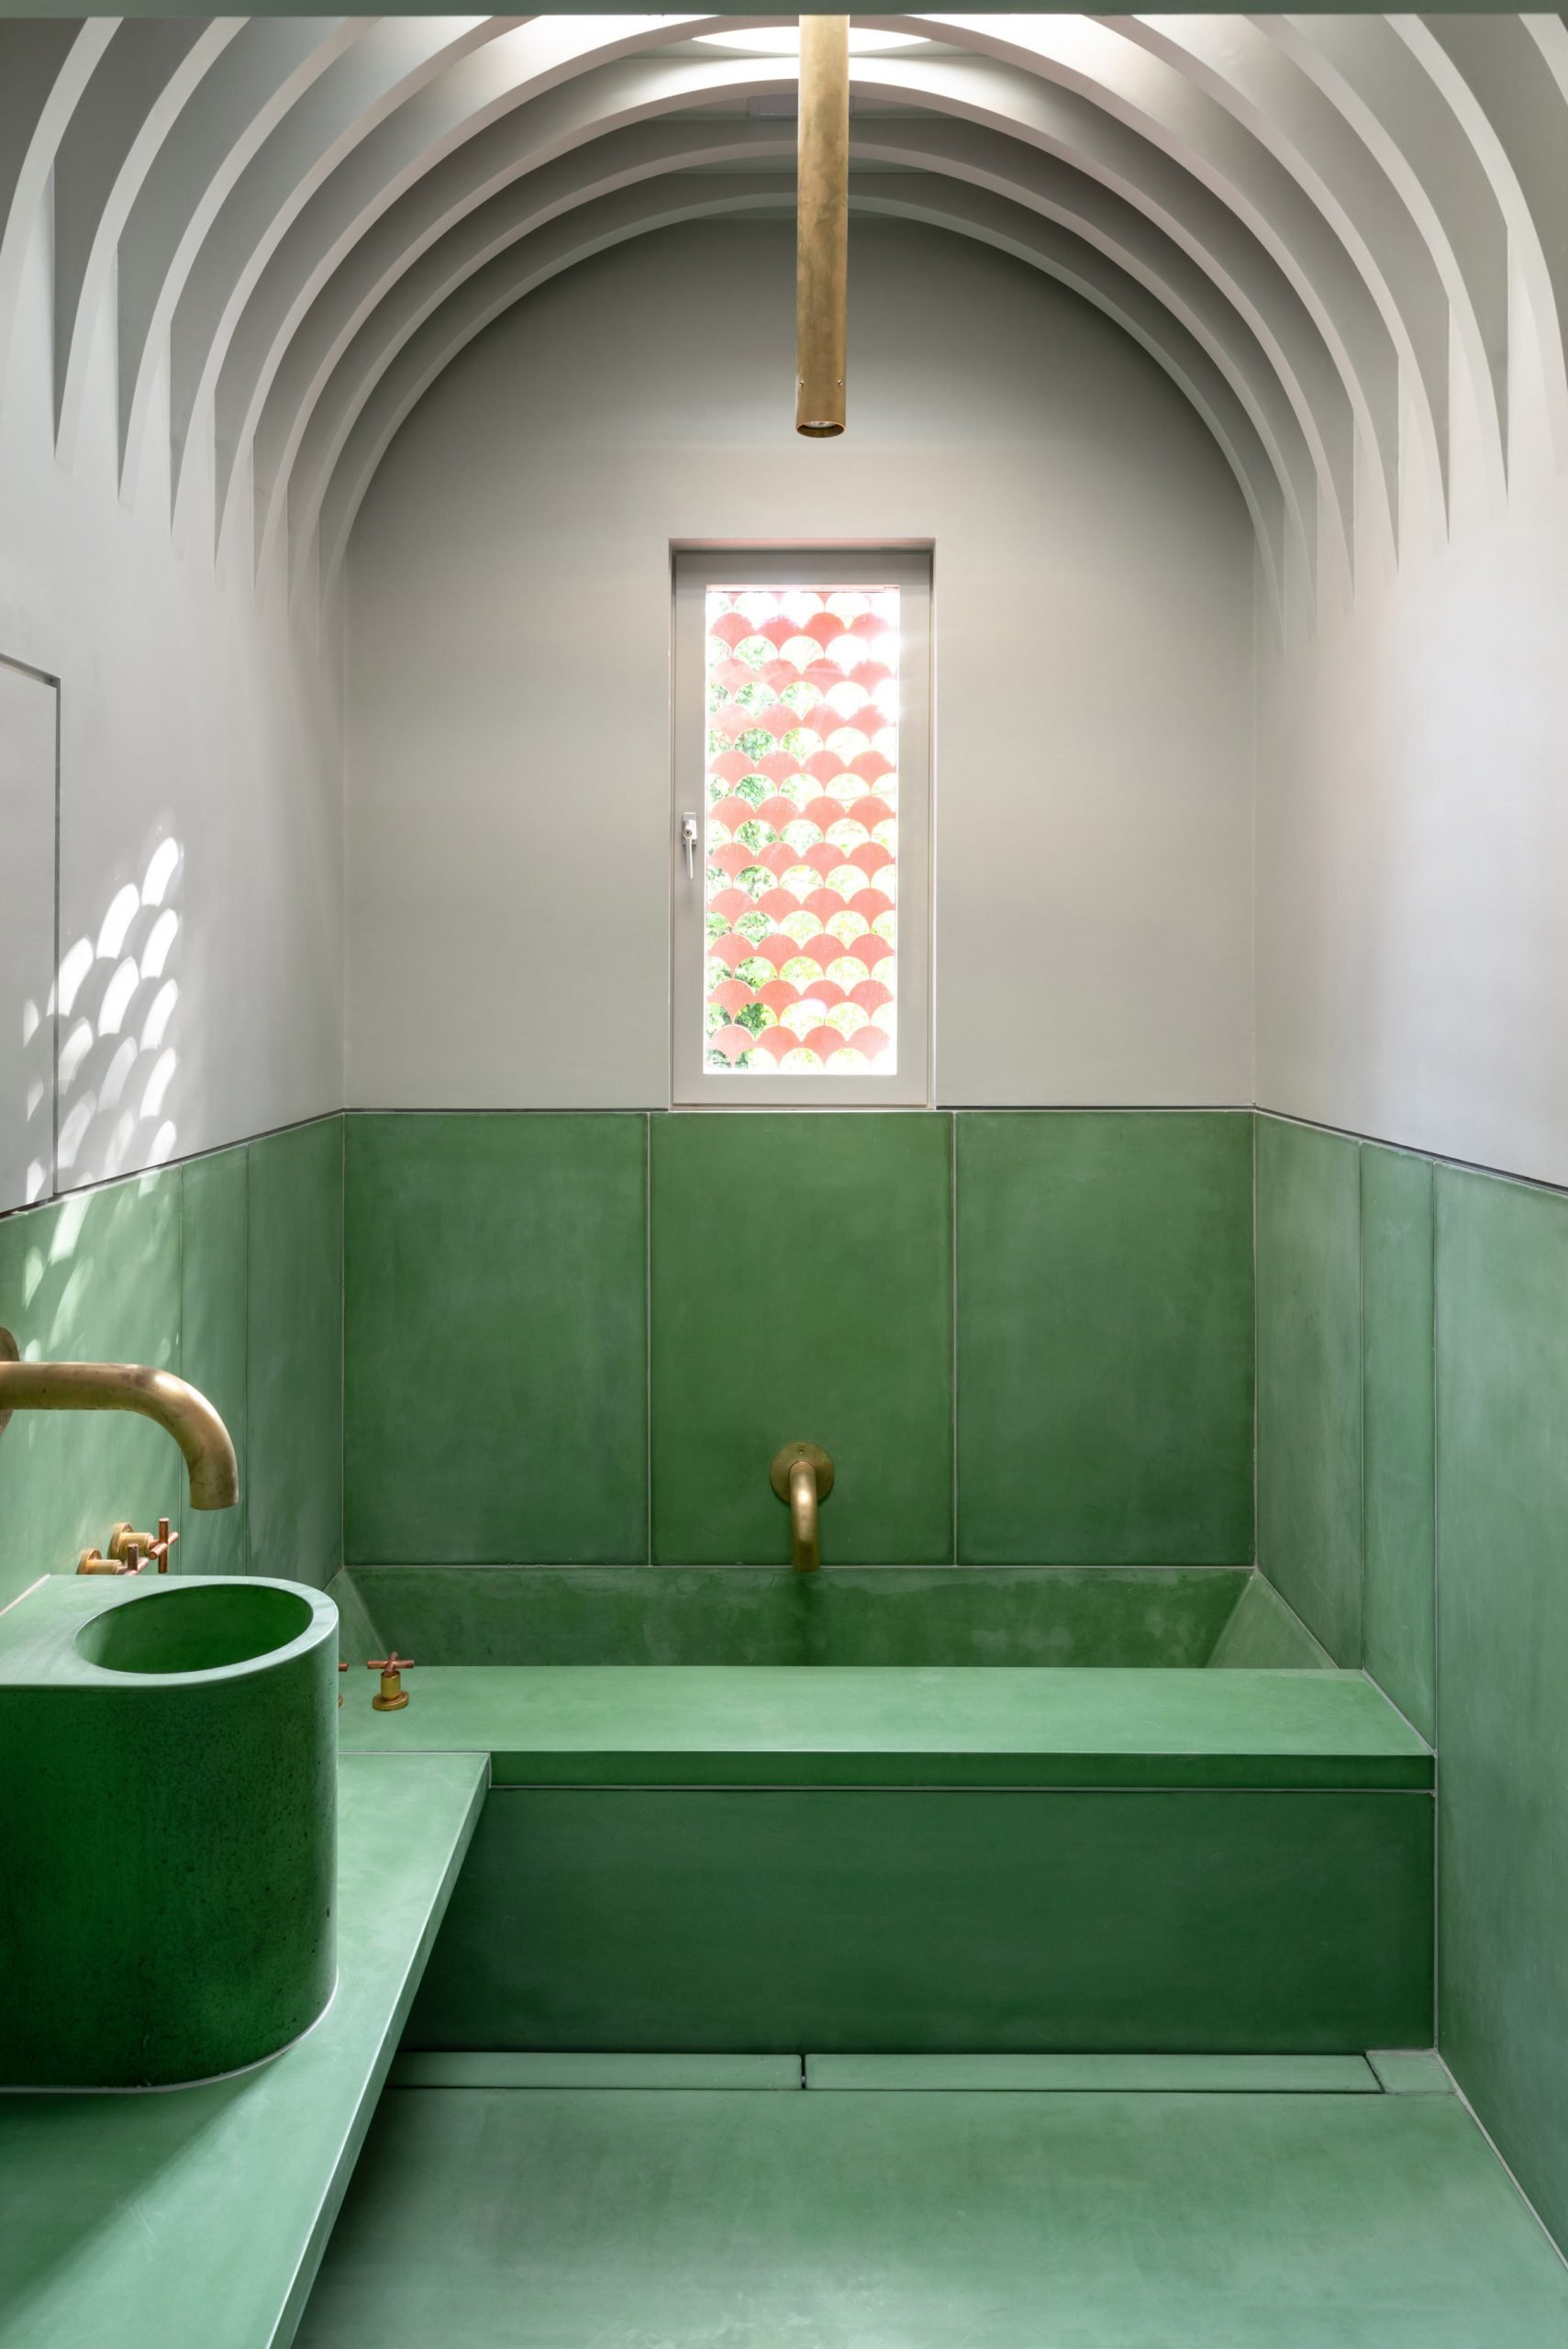 The bathroom in House Recast has a vaulted ceiling